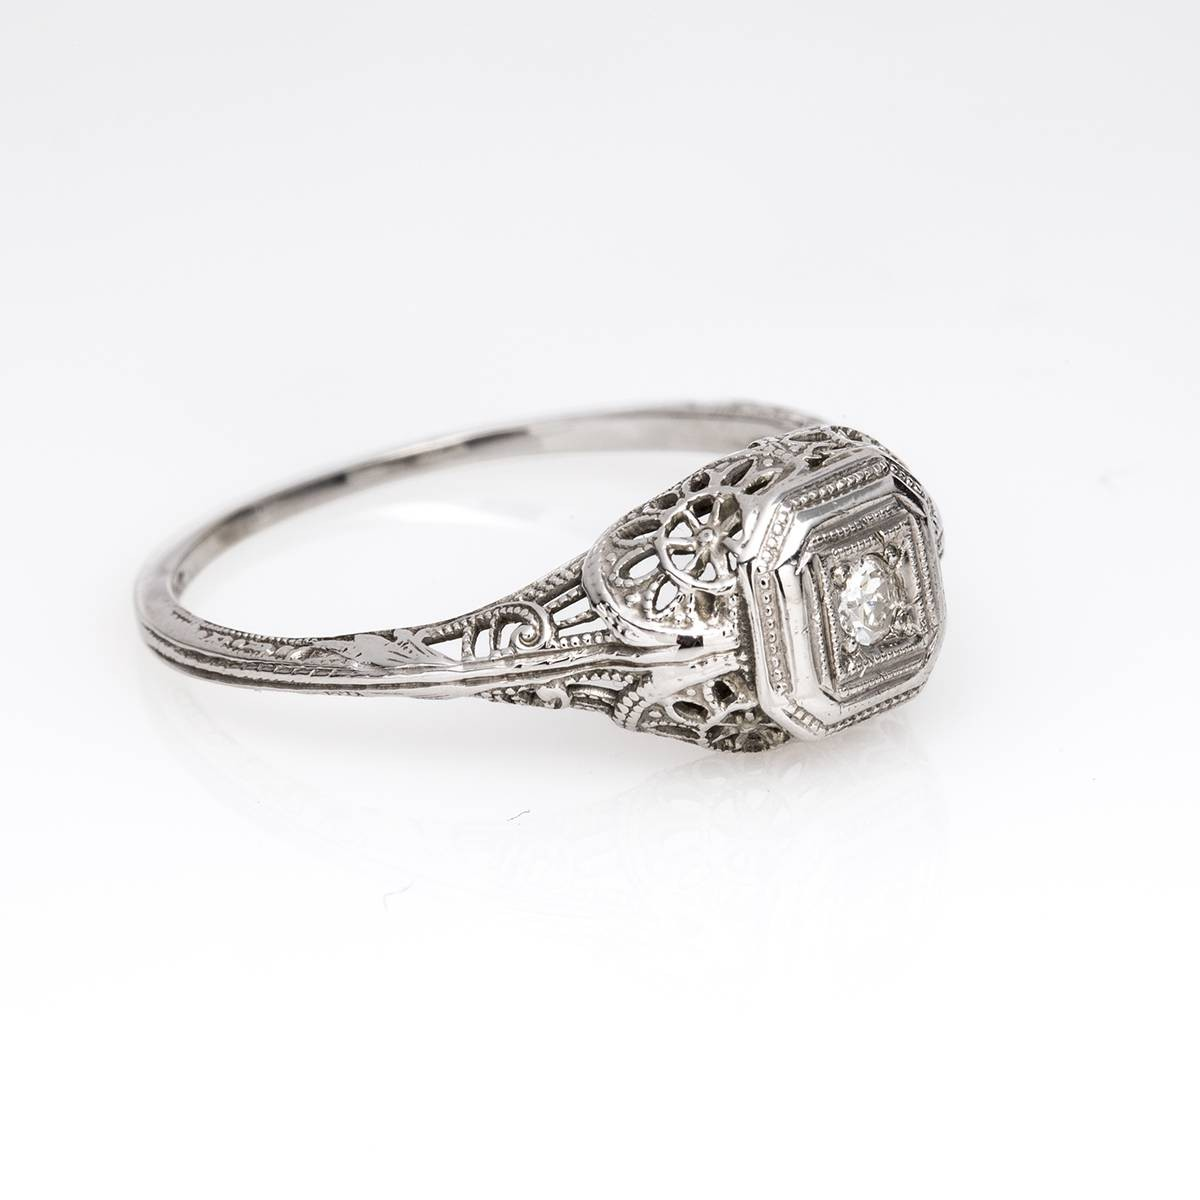 Vintage Art Deco Old European Cut Diamond Engagement Ring